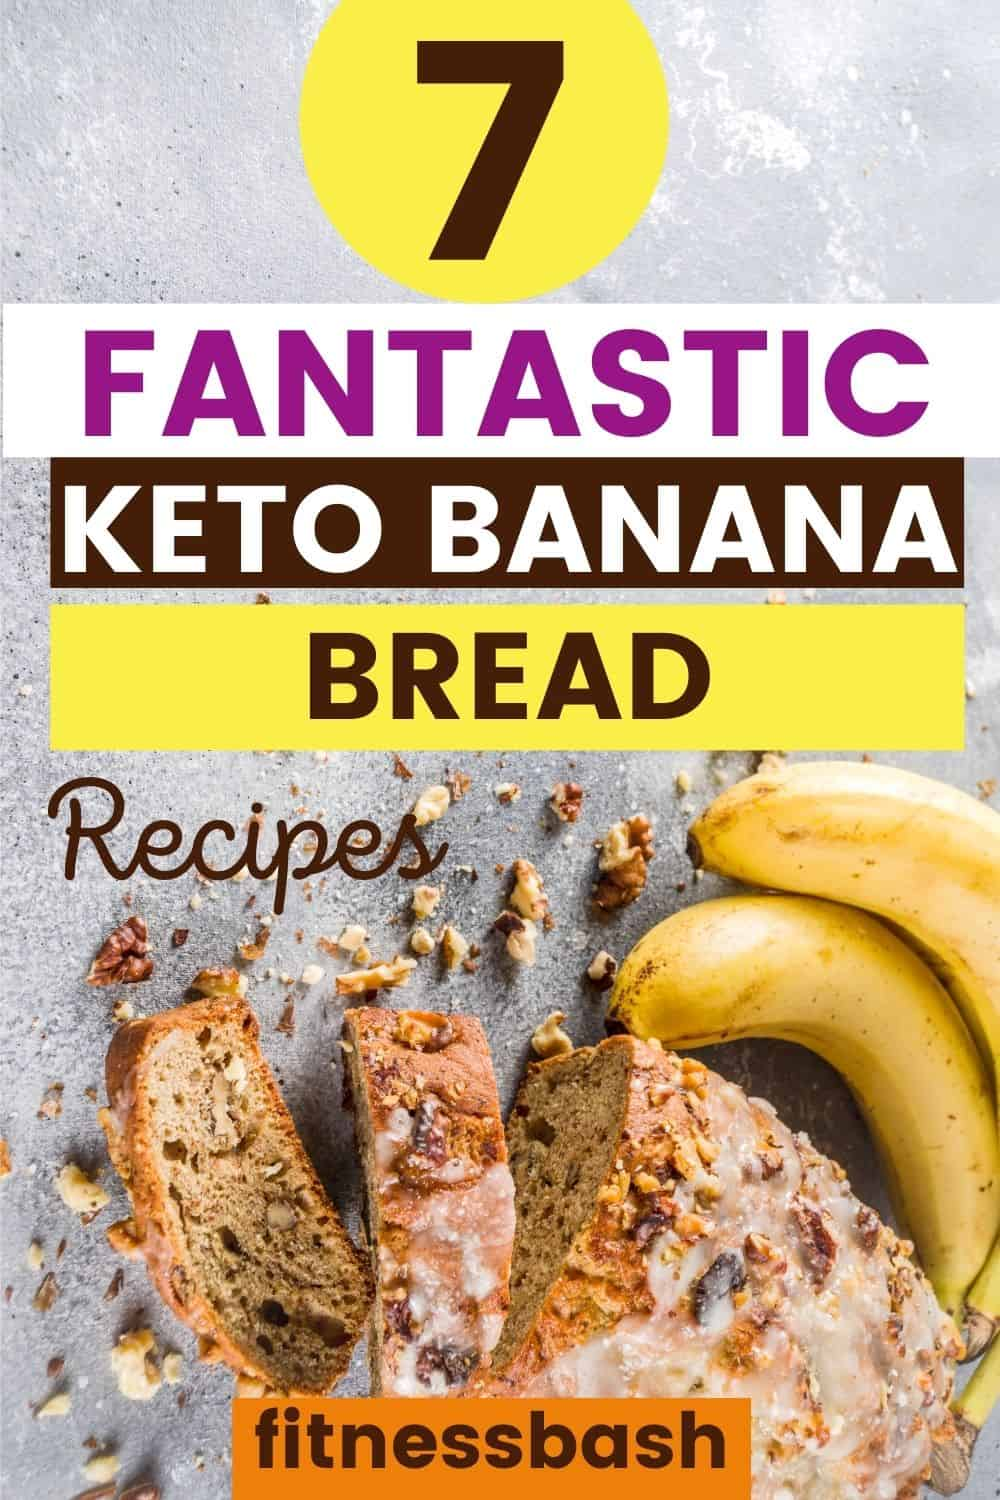 bread low-carb and keto with banana and almond flour